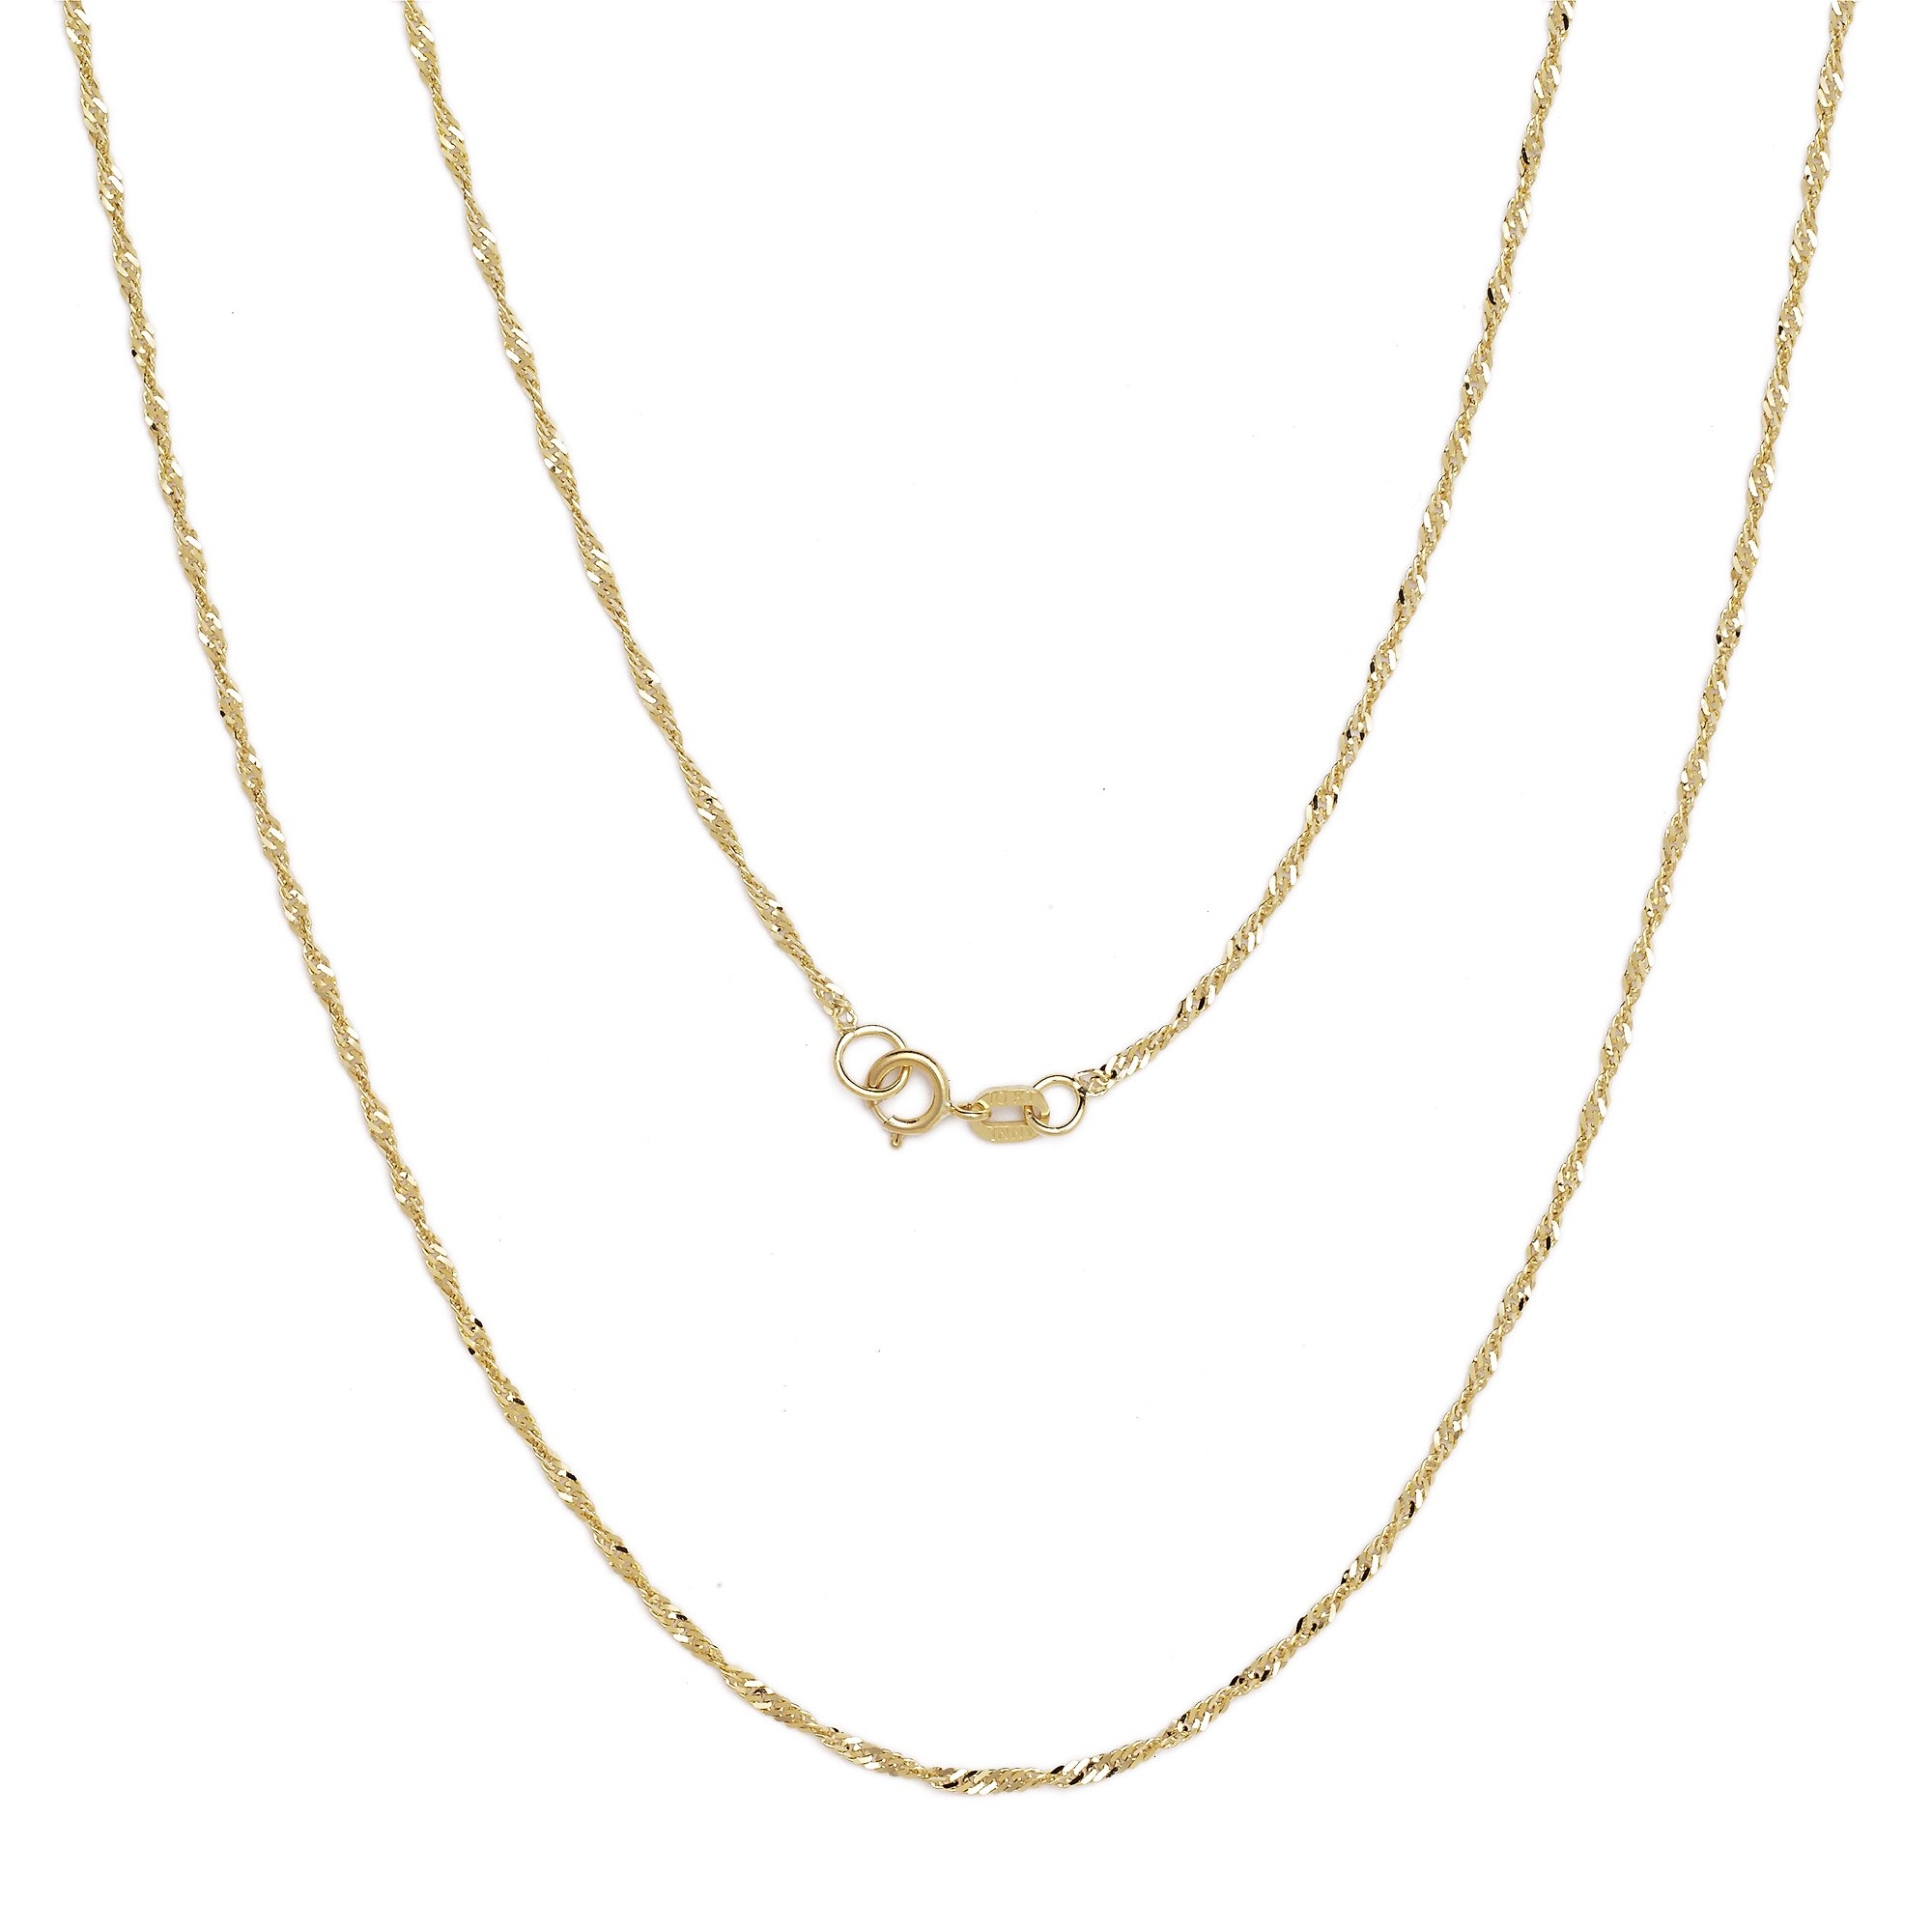 22 Inch 10k Yellow Gold Thin Singapore Chain Necklace, 0.05 Inch (1.3mm)